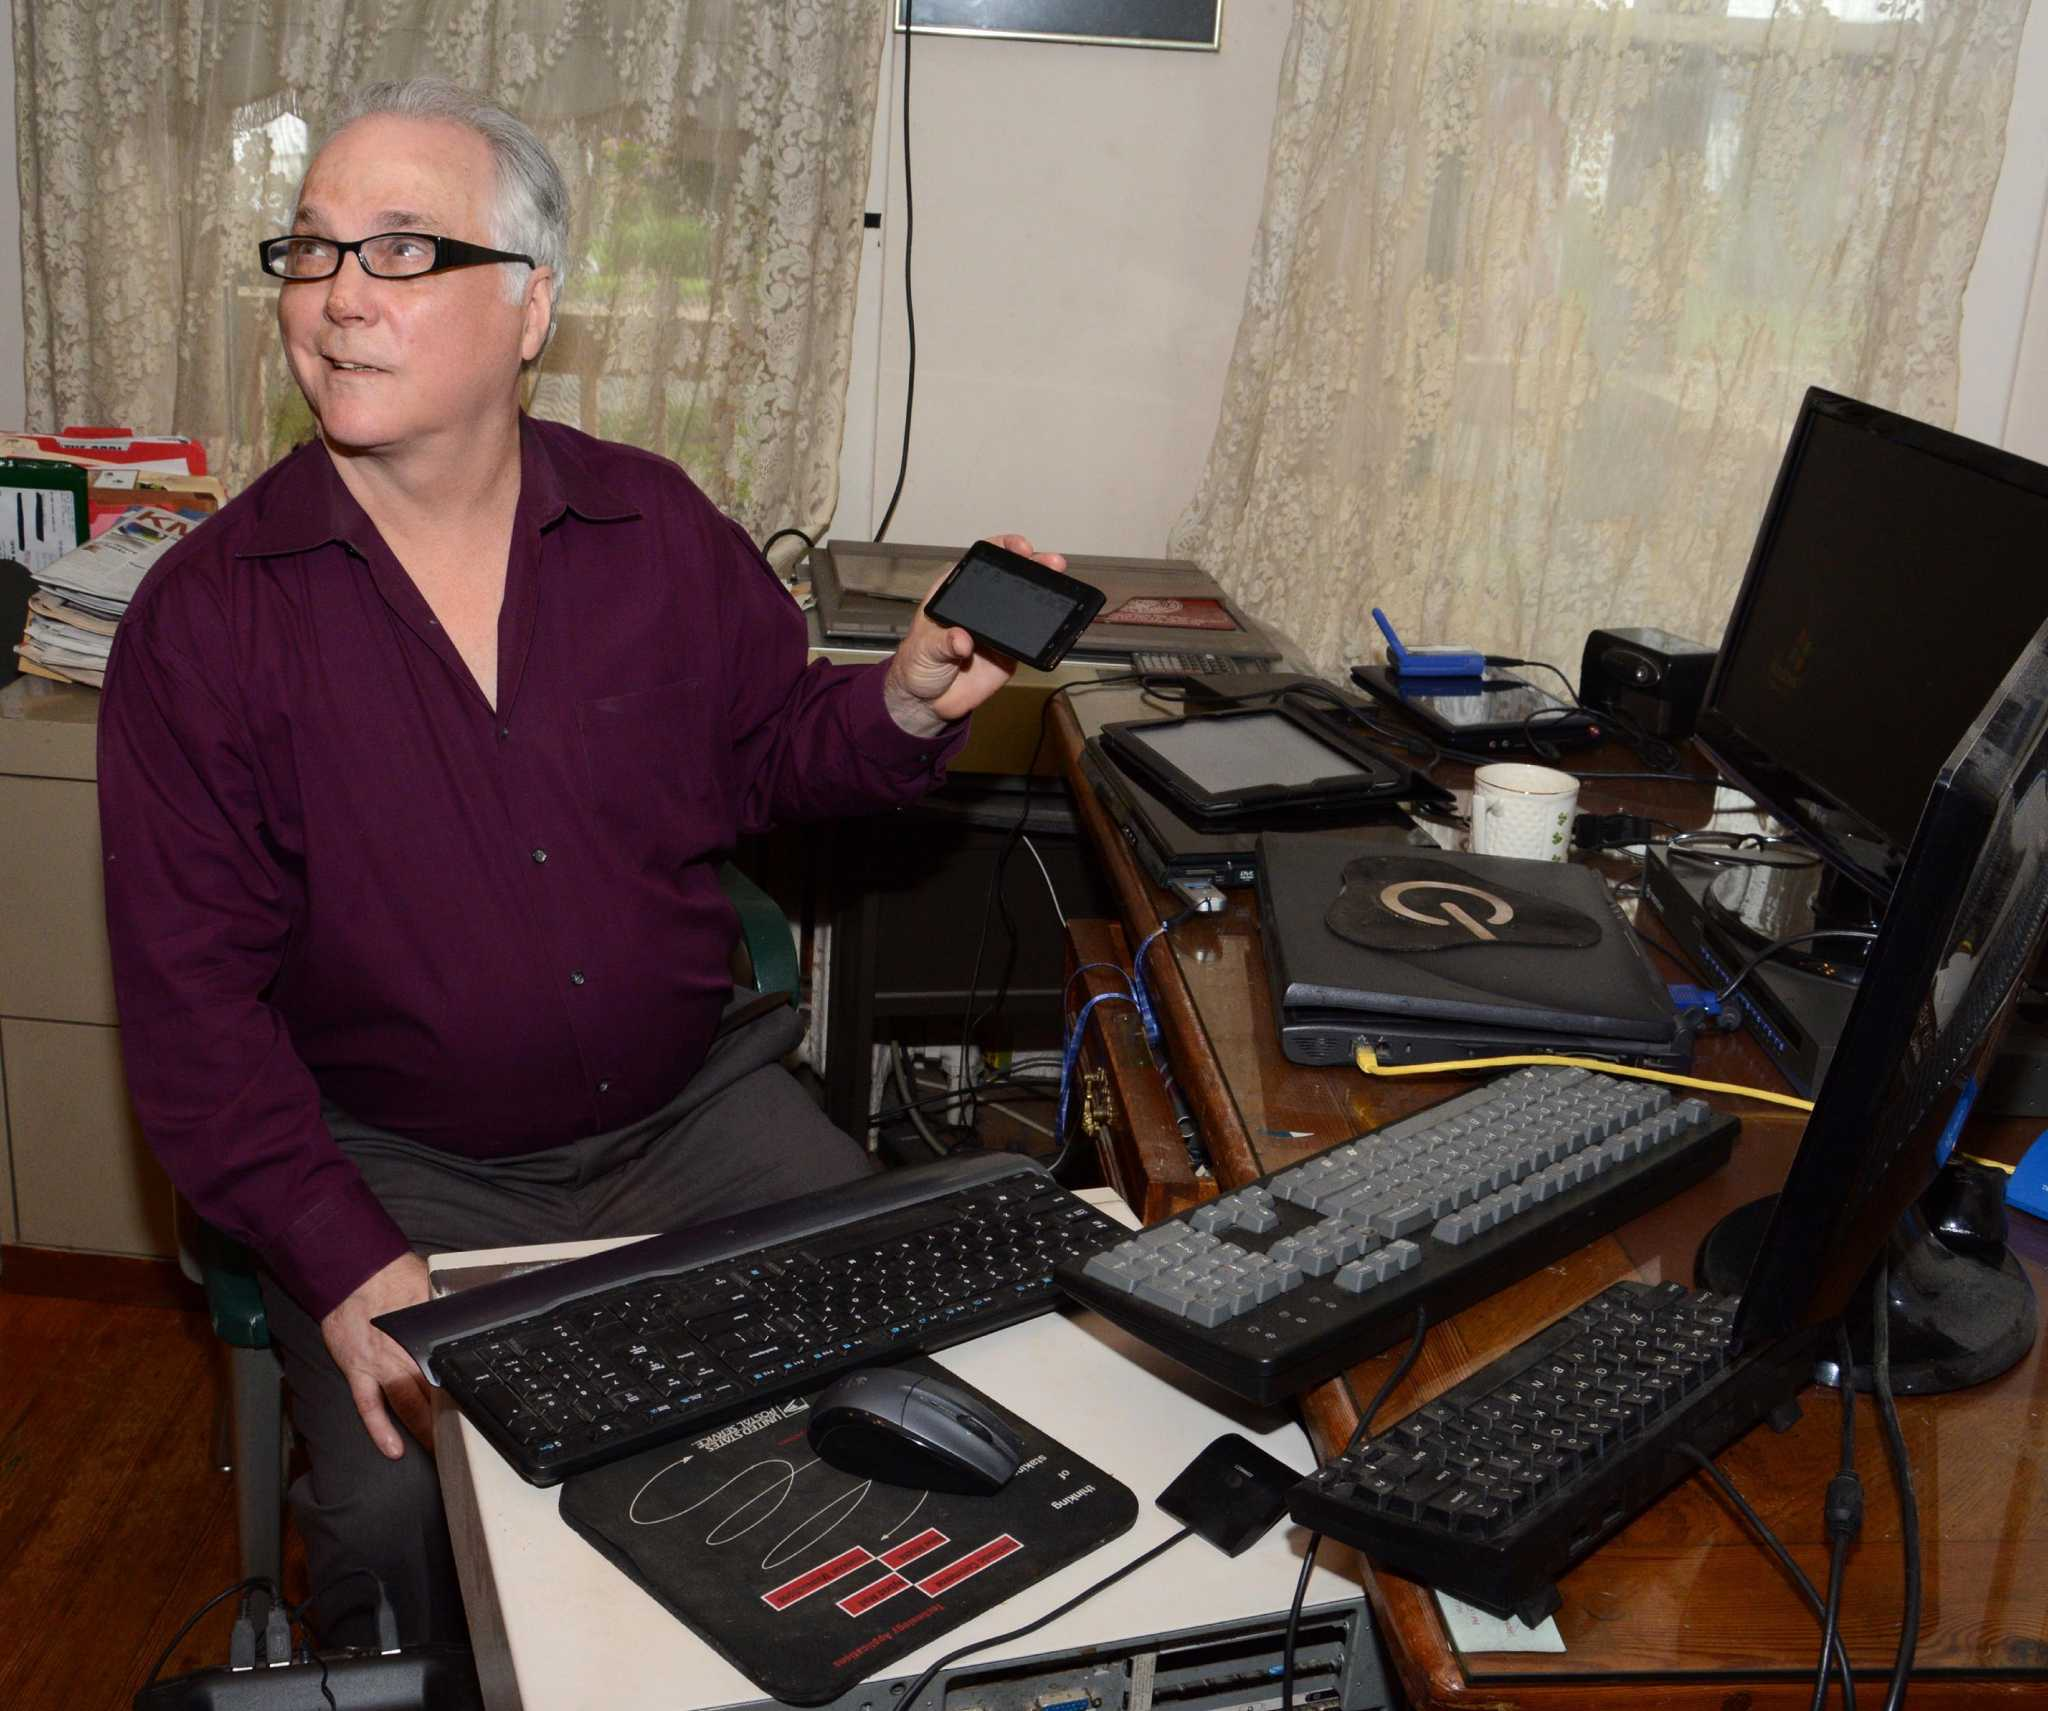 Danbury Inventor's Monitoring Device May Help Autistic